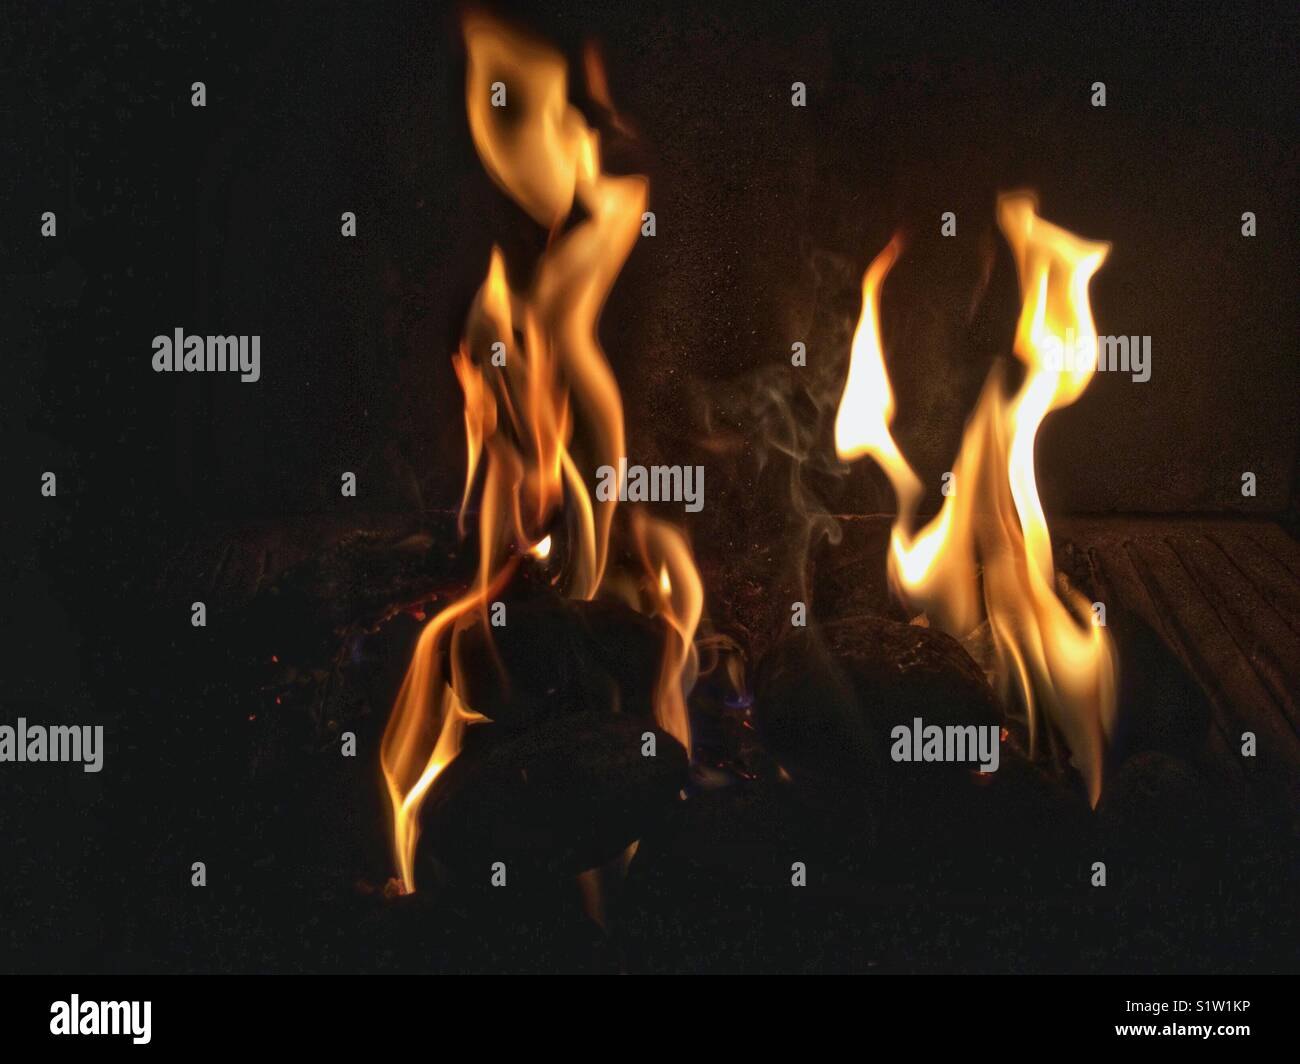 Dancing flames in an open fire place. - Stock Image